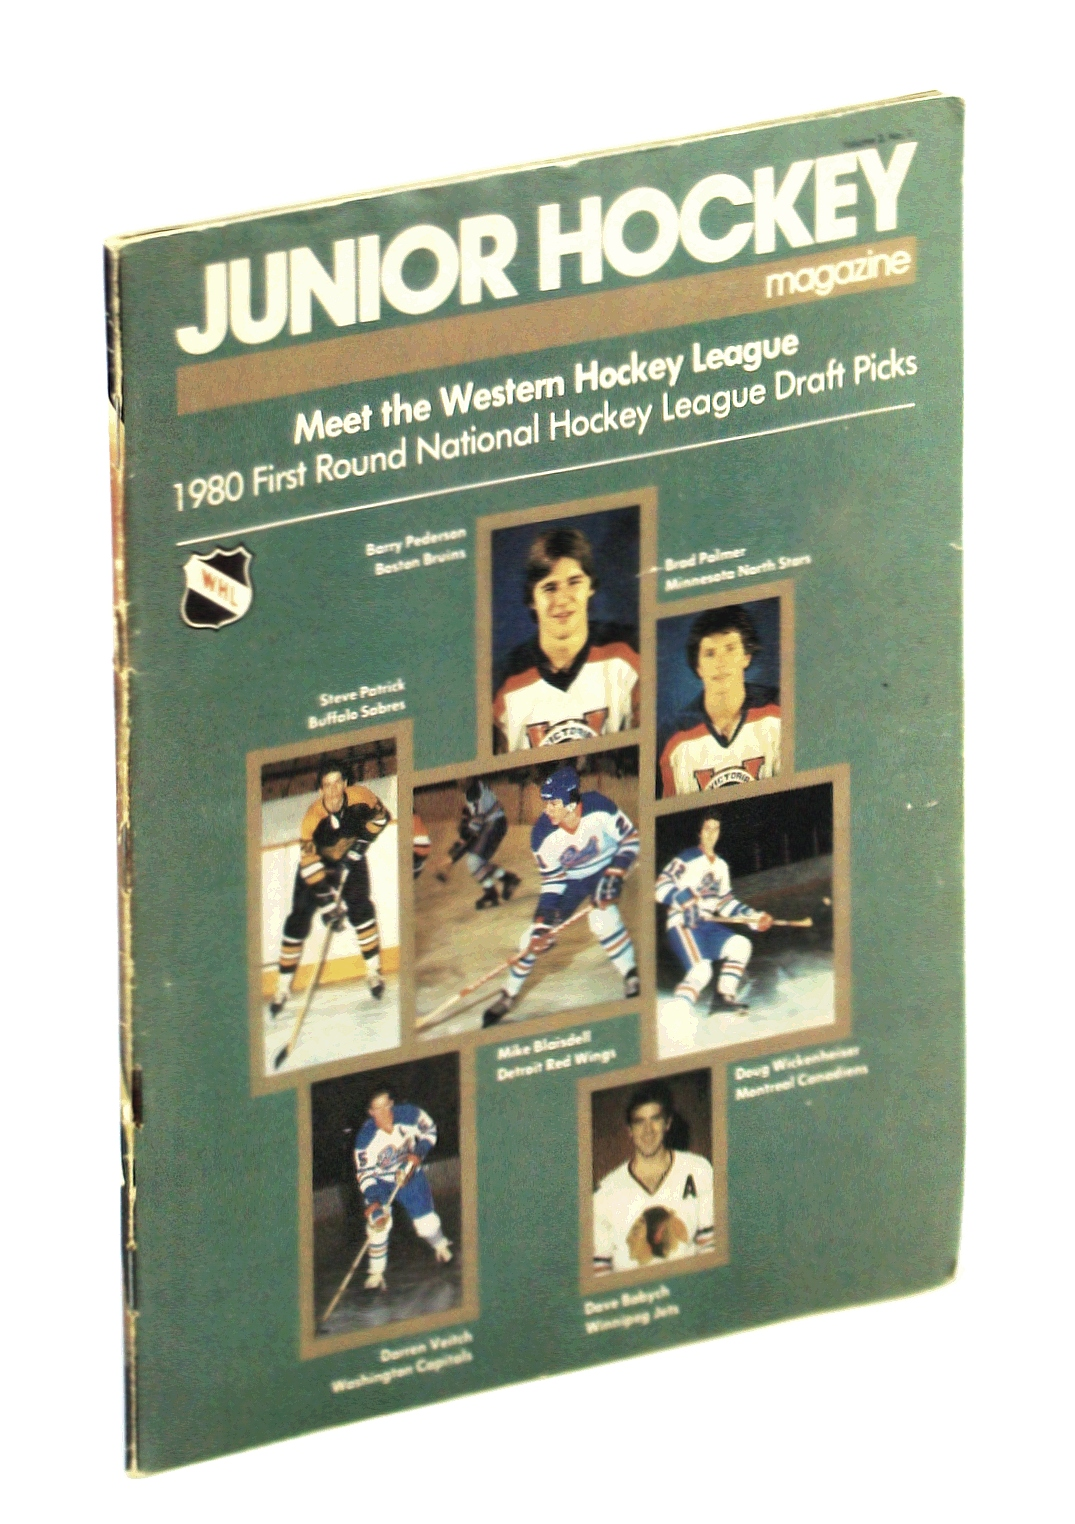 Image for Junior Hockey Magazine, September - October 1980, Volume 3, No. 1: Cover Photos of 1980 NHL First Round Picks From the WHL